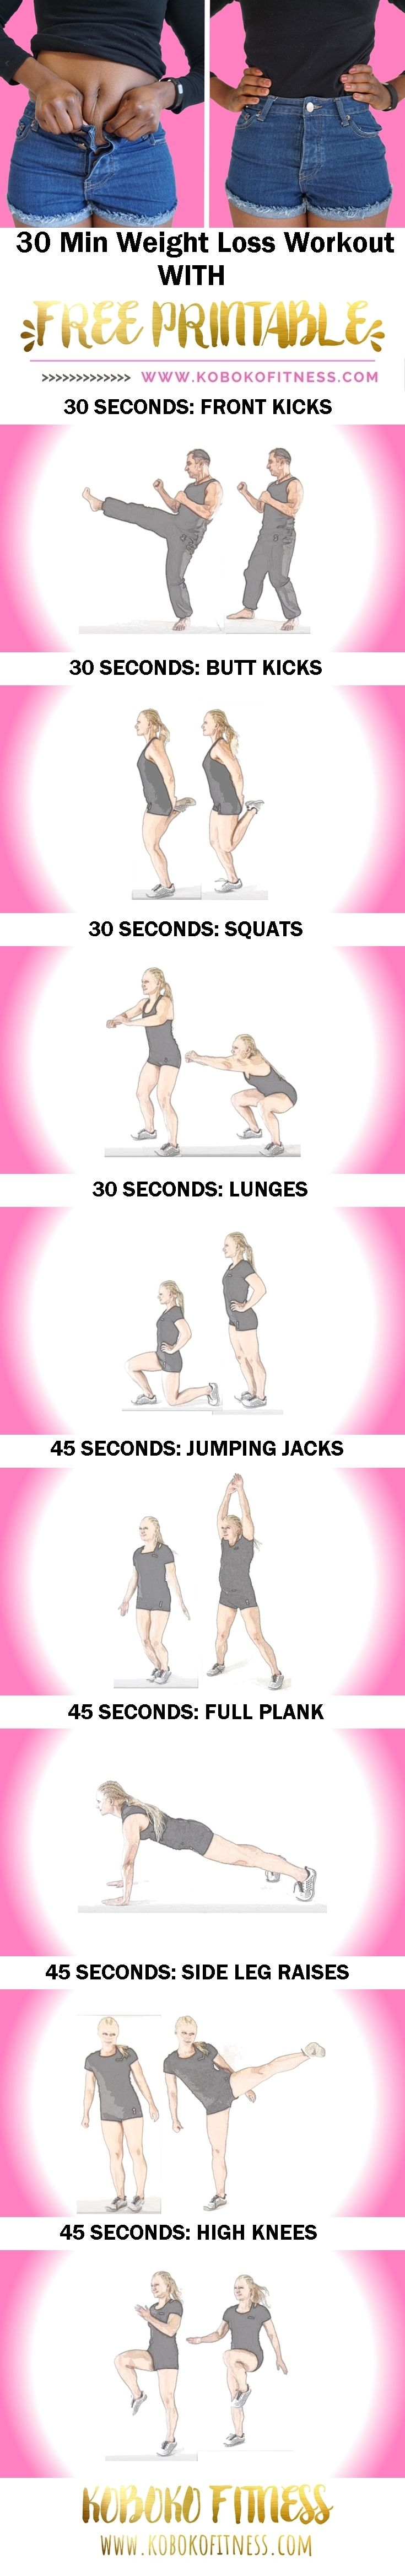 You have discovered the best weight loss workout that you can do at home! Perfect for a busy schedule. Very motivating and no equipment required!